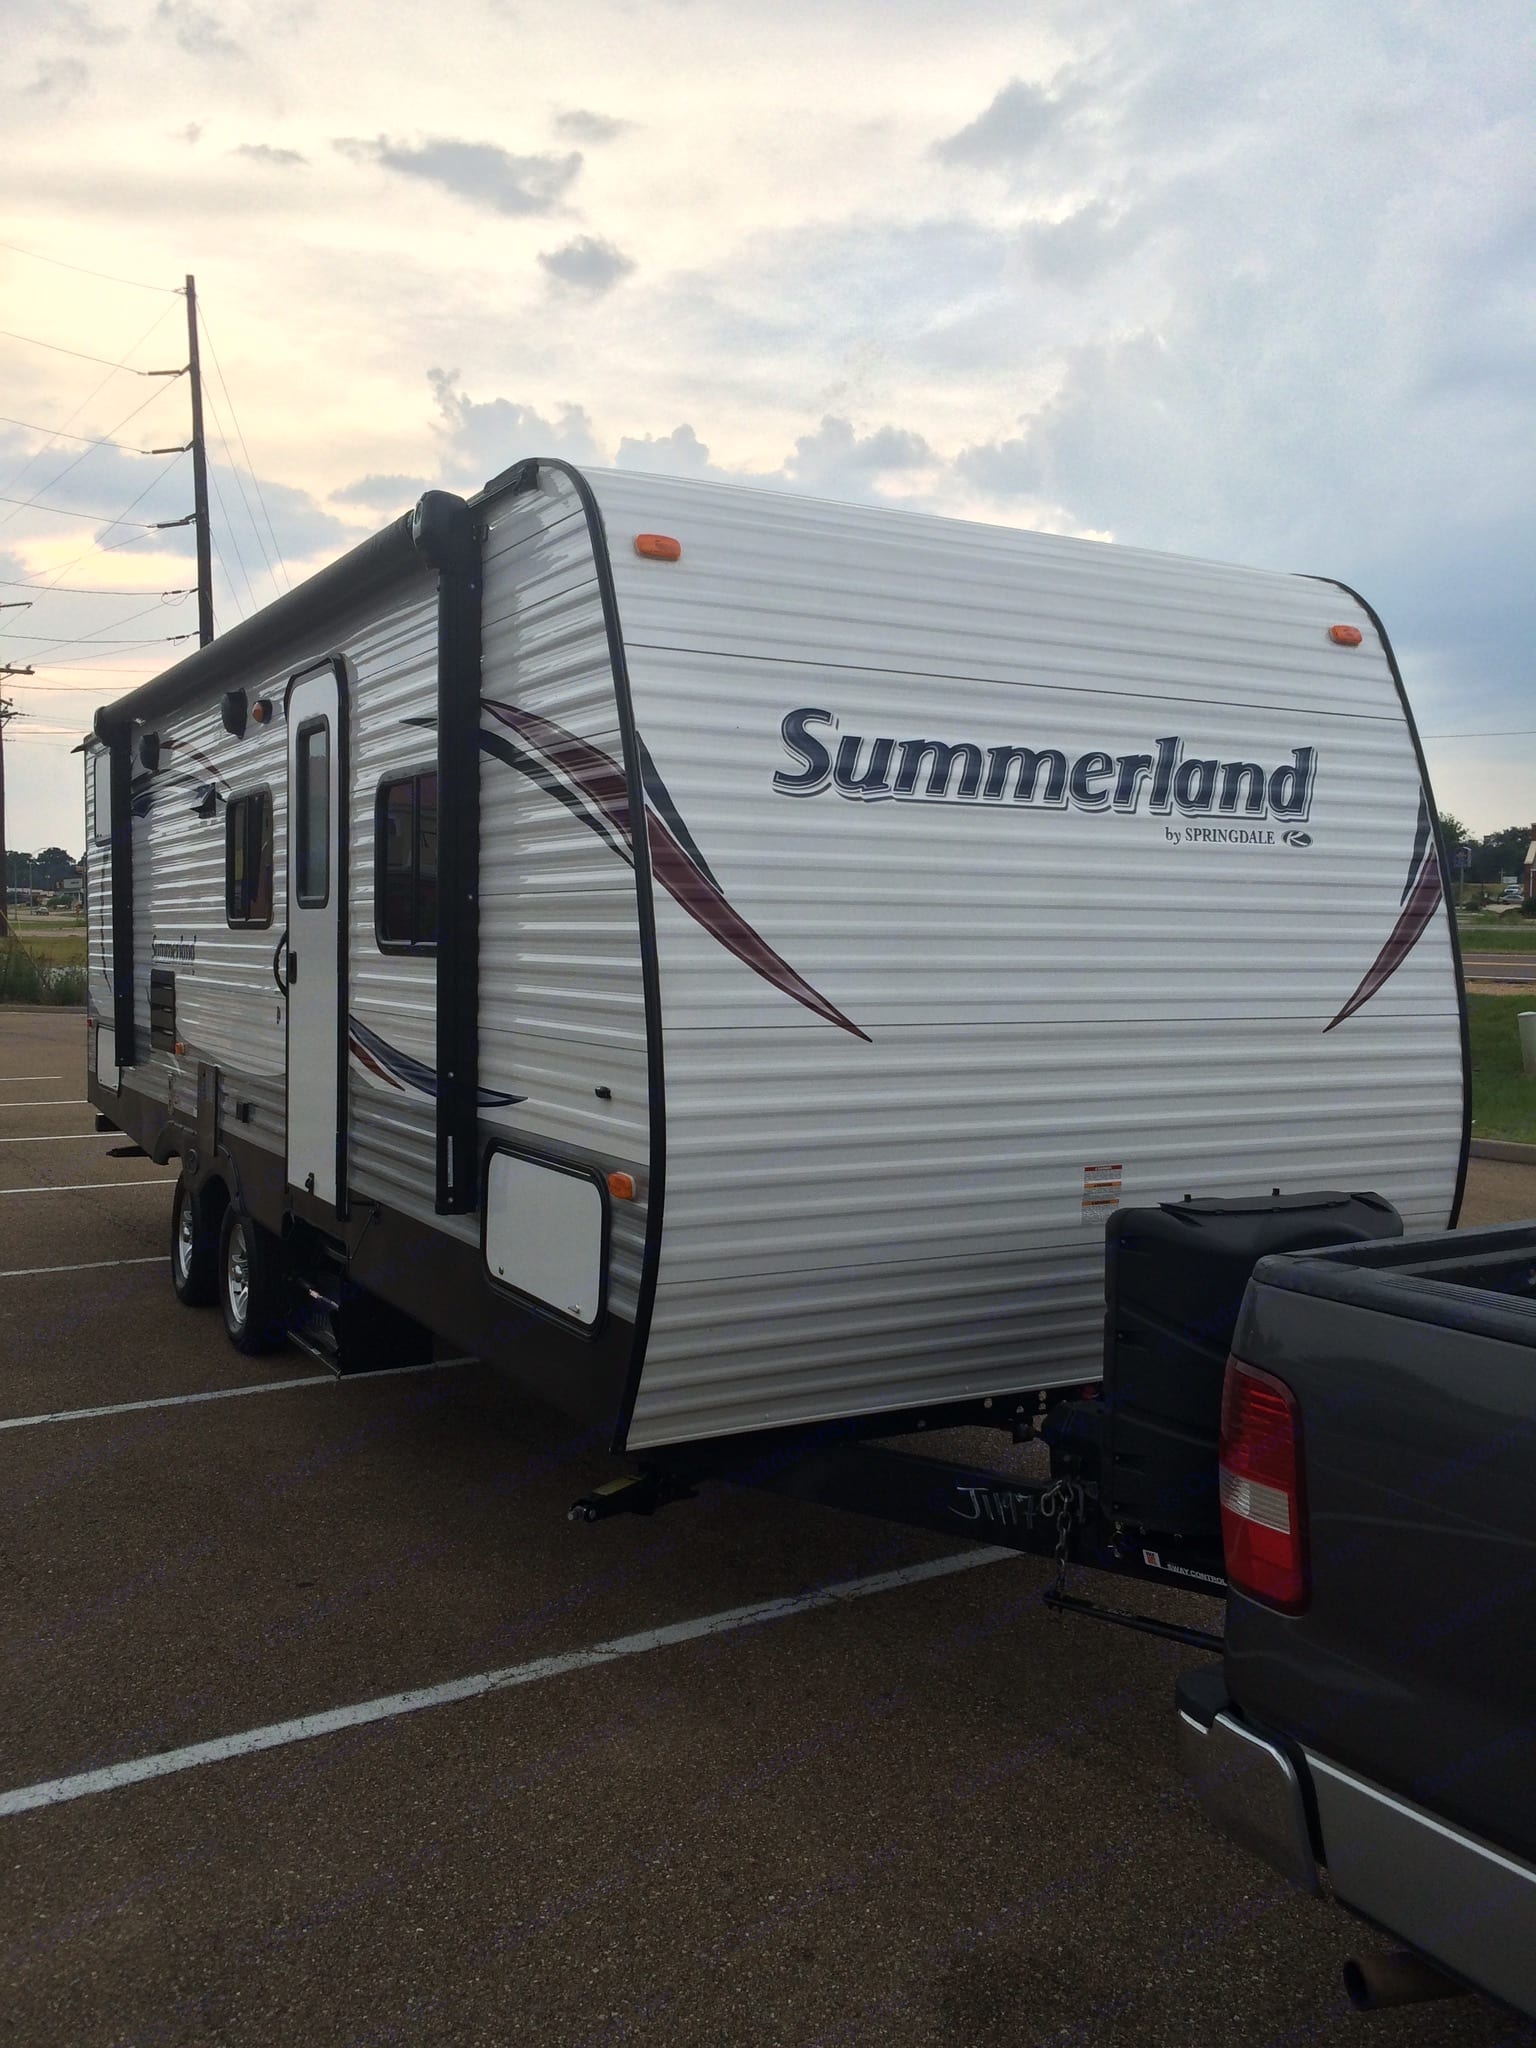 Exterior view — ready for adventure!. Keystone Summerland 2015